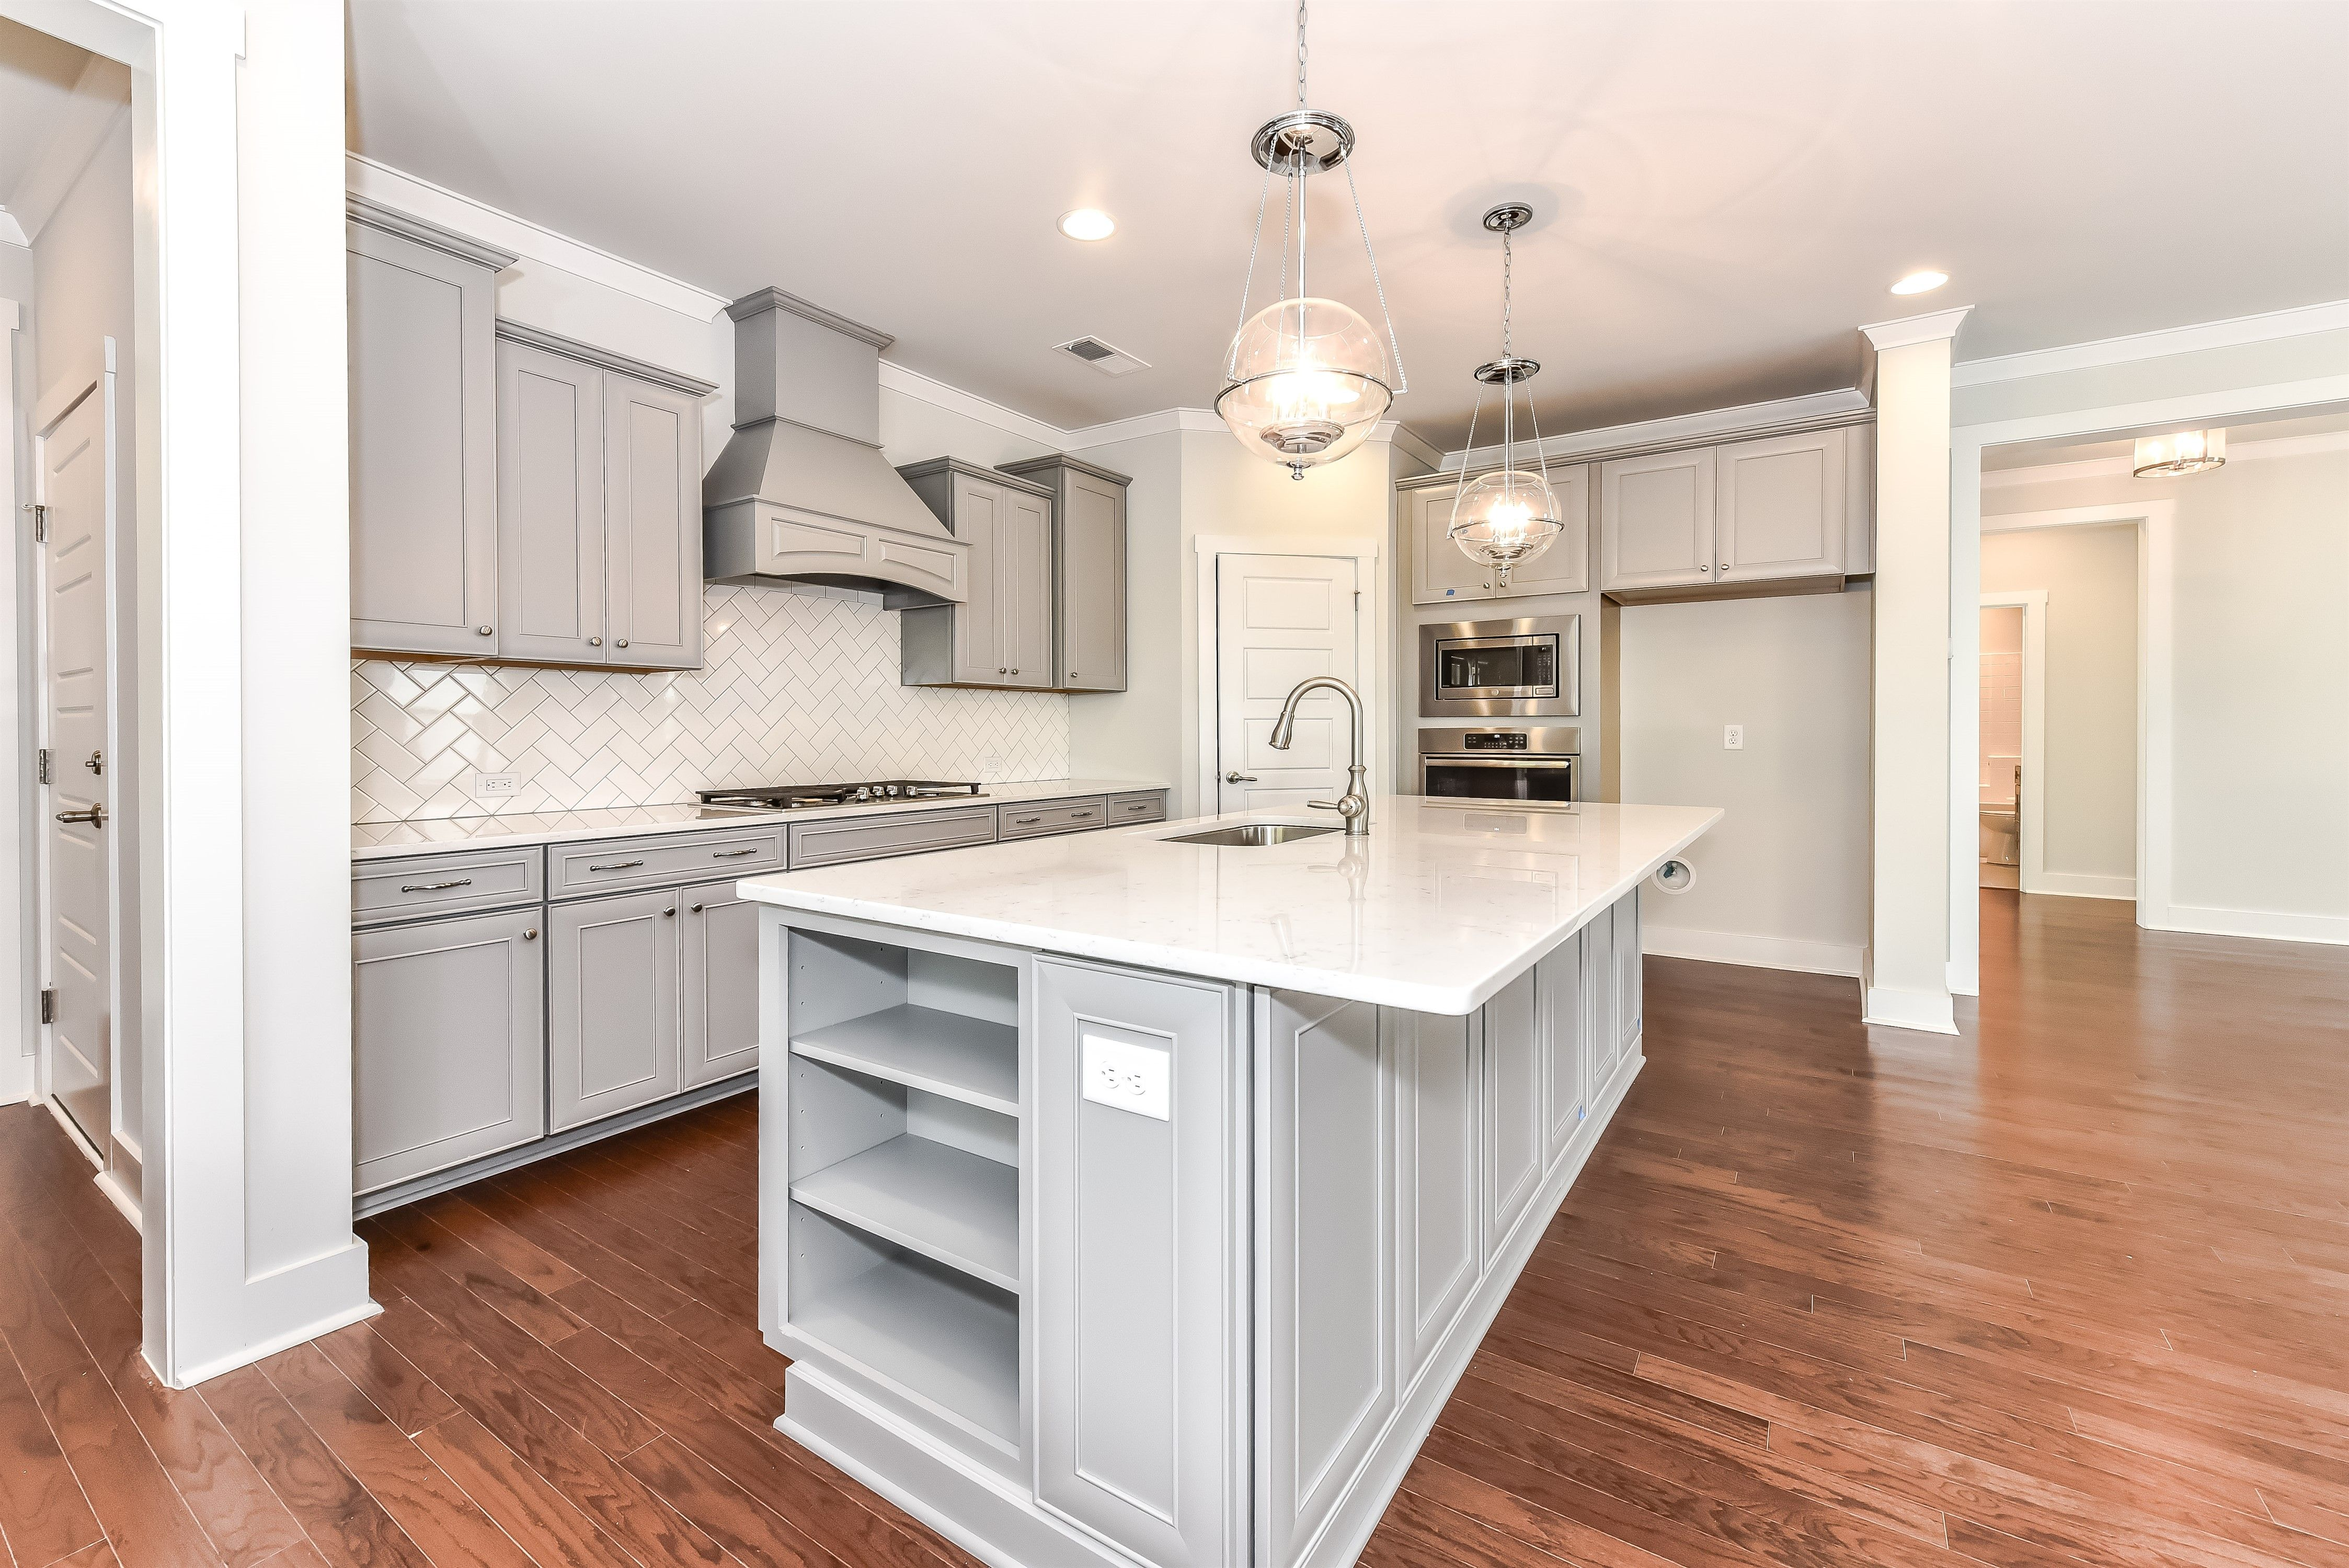 Pin On Magnificent Kitchens And Serving Pantries